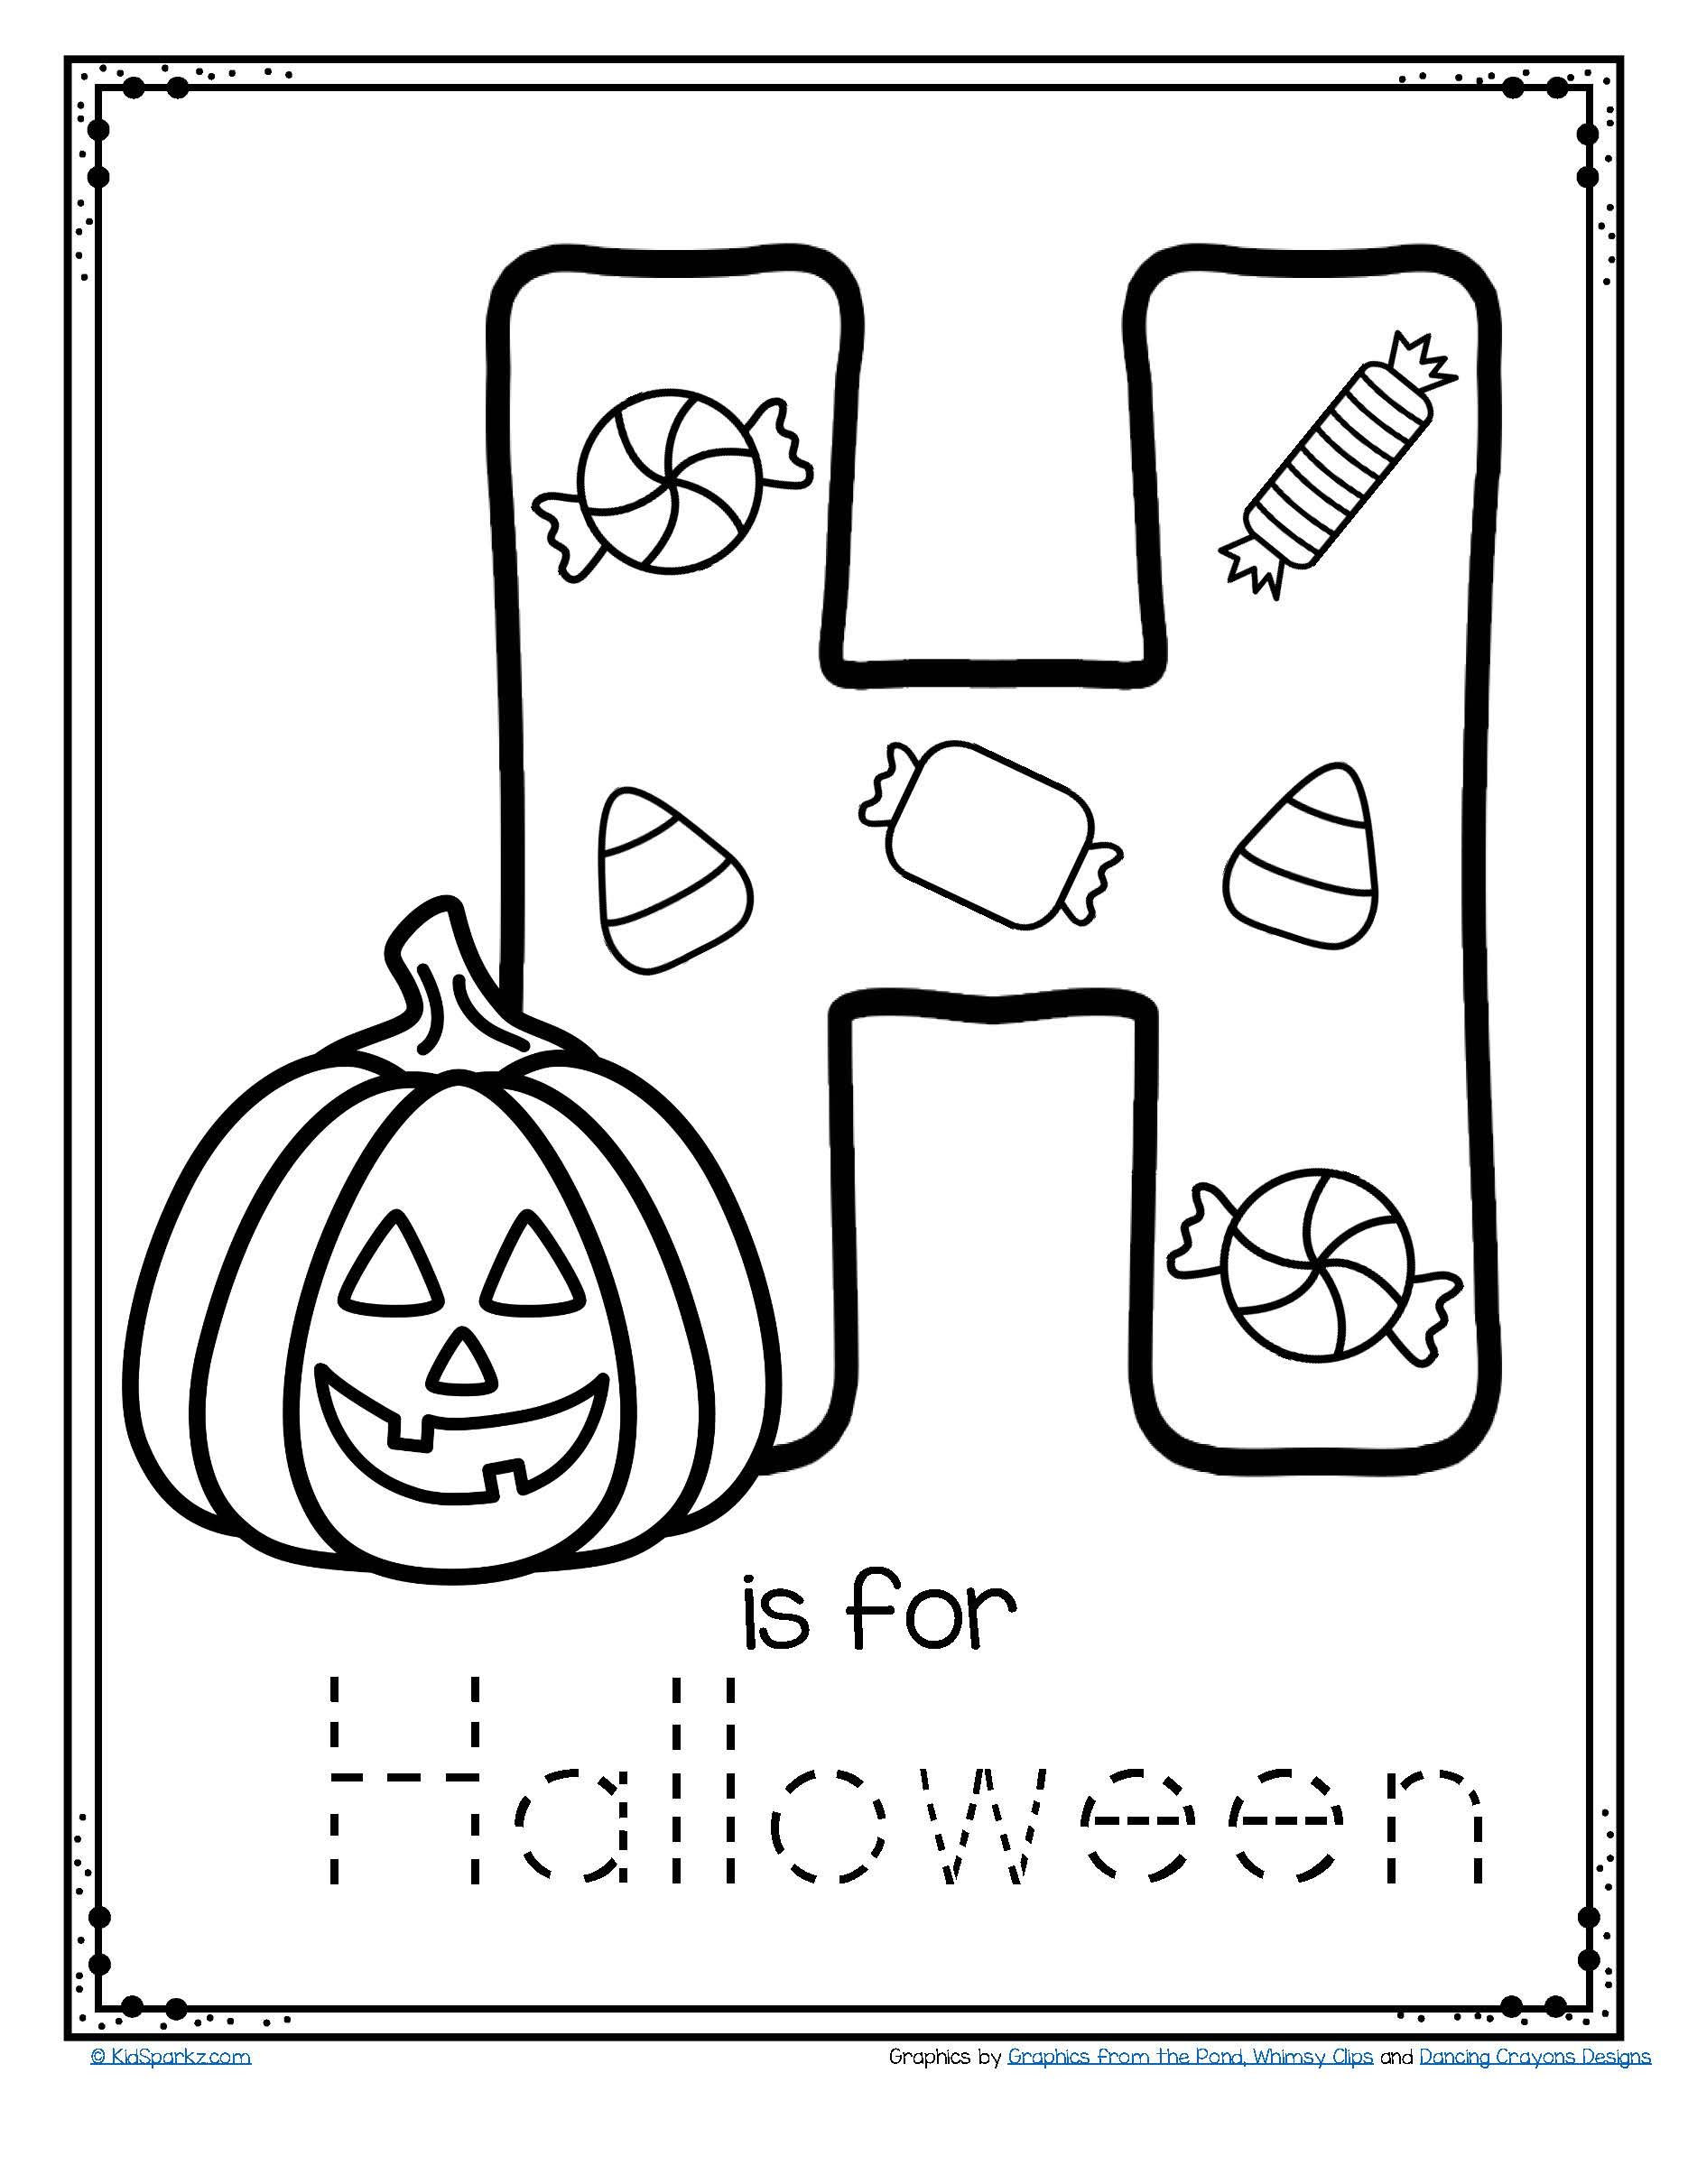 Free Kindergarten Halloween Worksheets Printable Letter H is for Halloween Trace and Color Printable Free